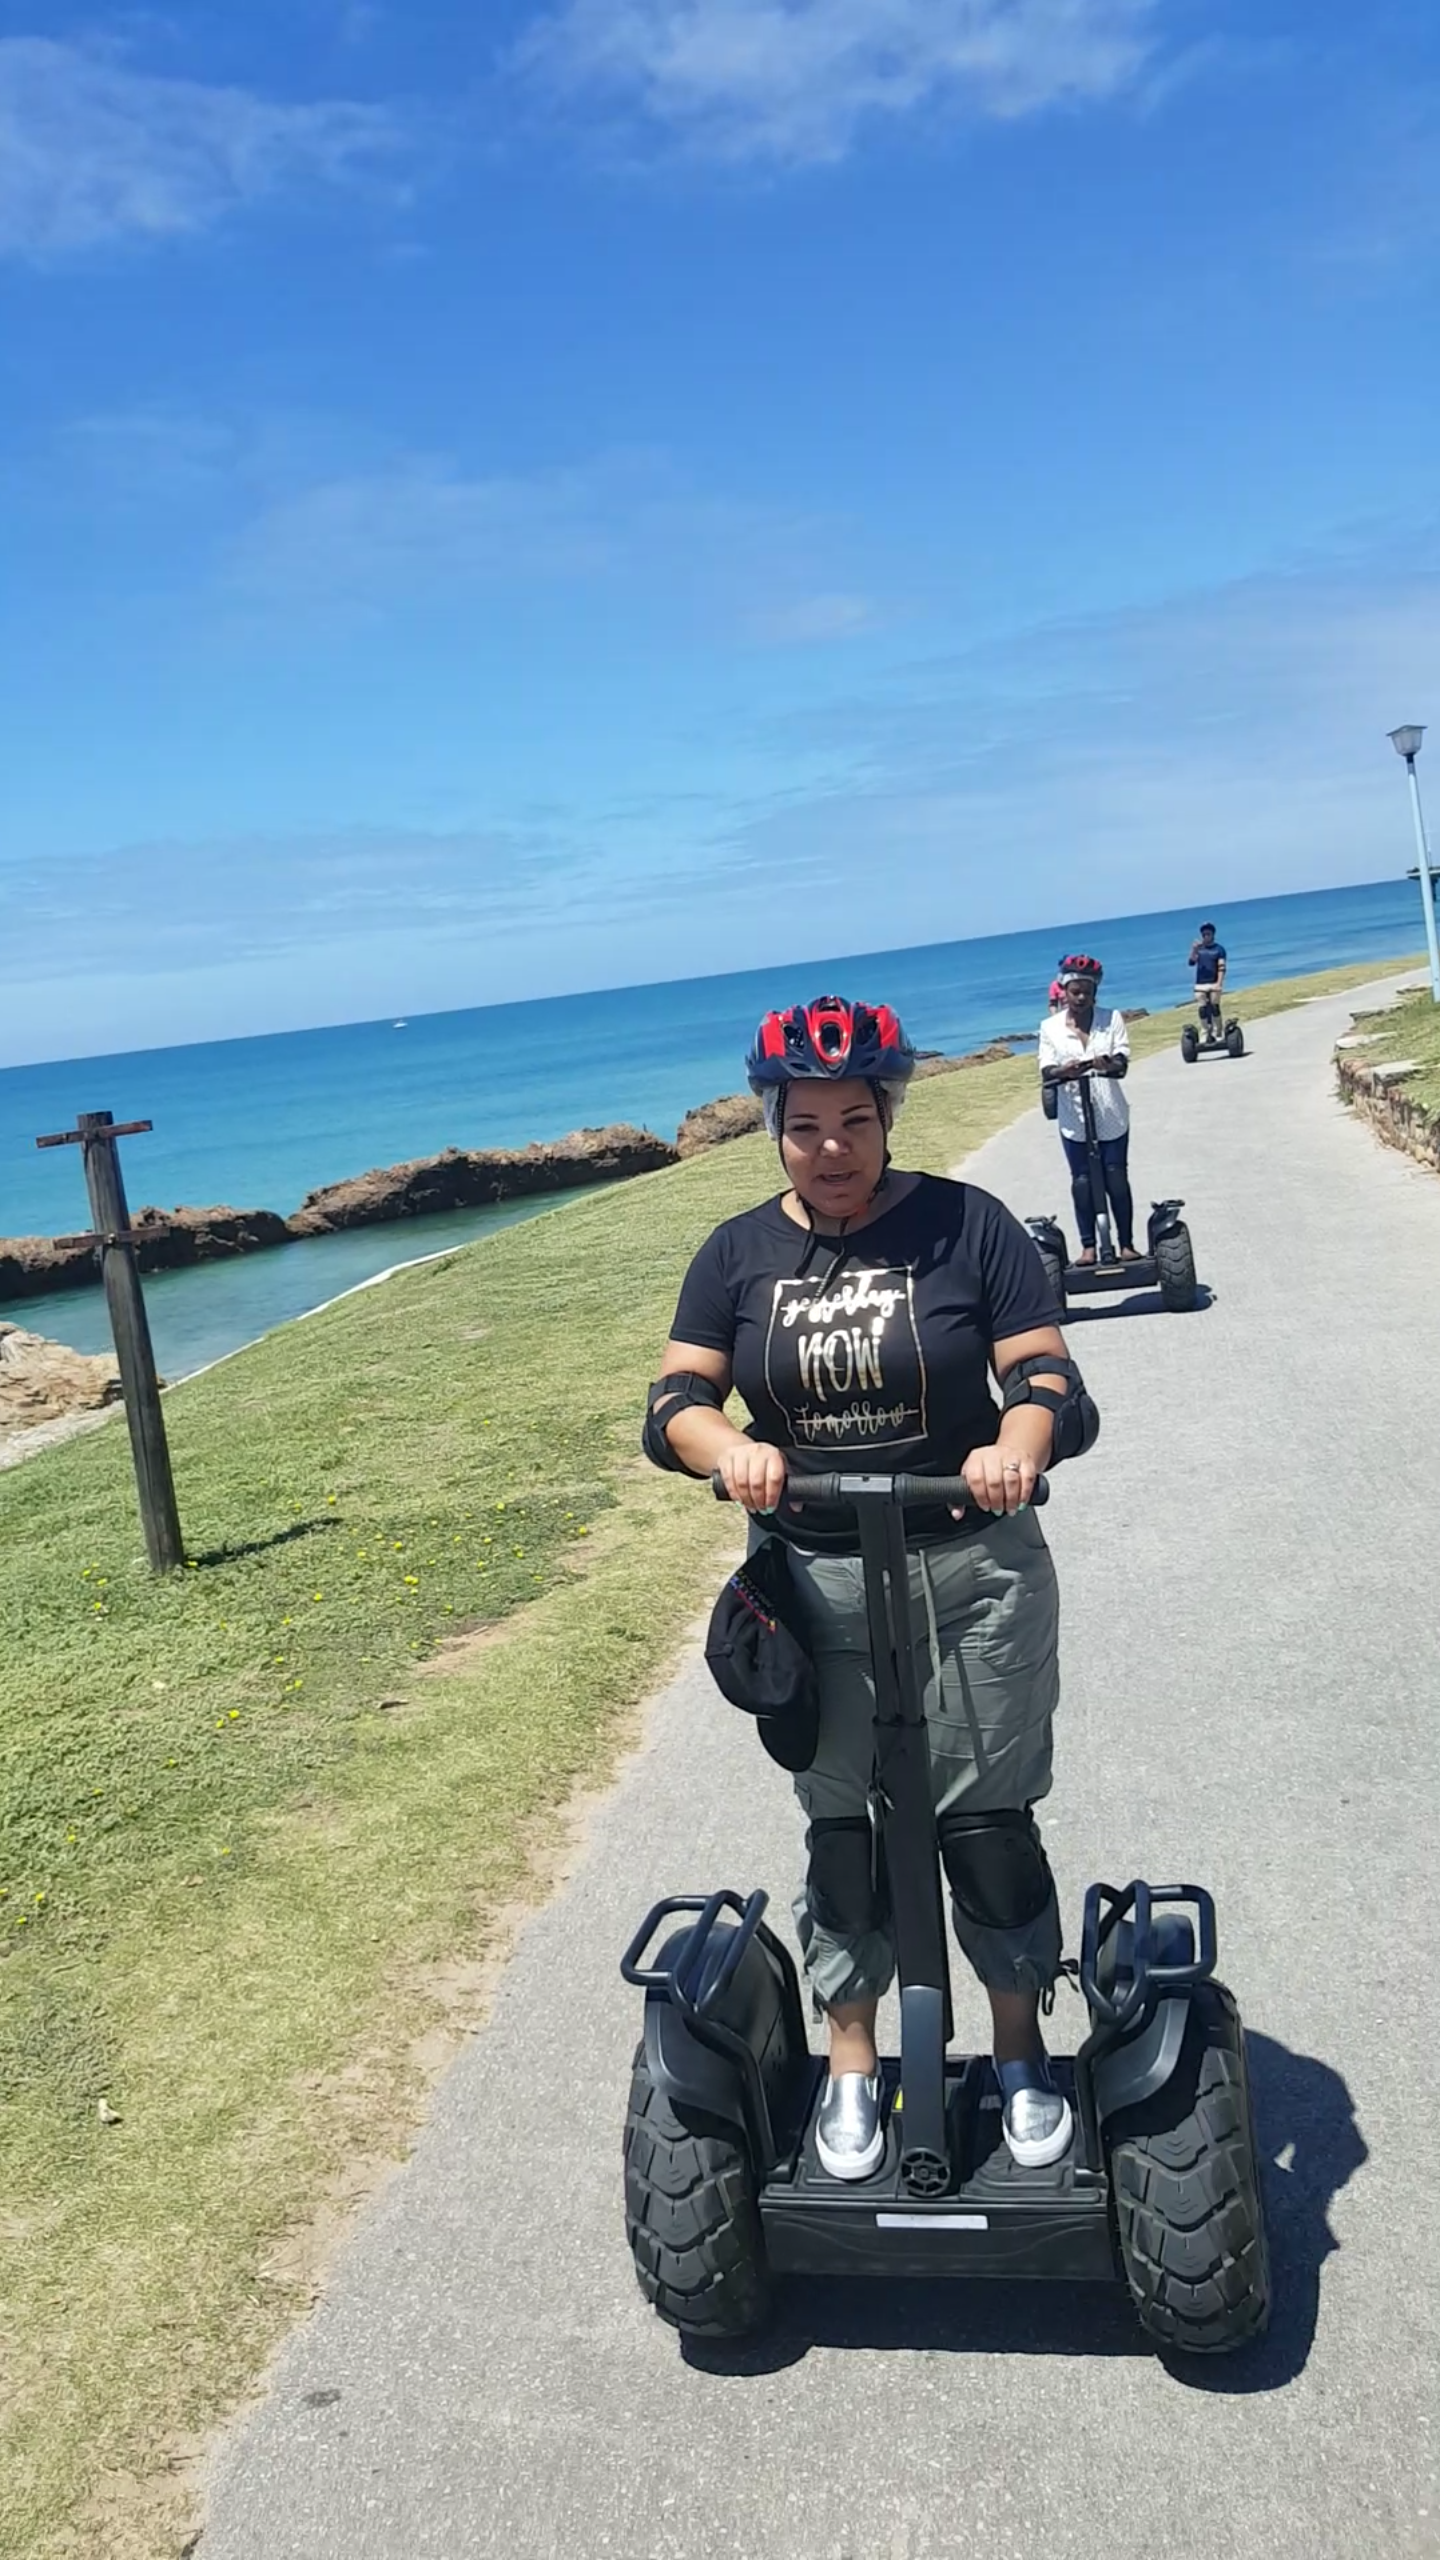 Wheely – Wheely! Don't pop your heely! Segway Tours in Nelson Mandela Bay